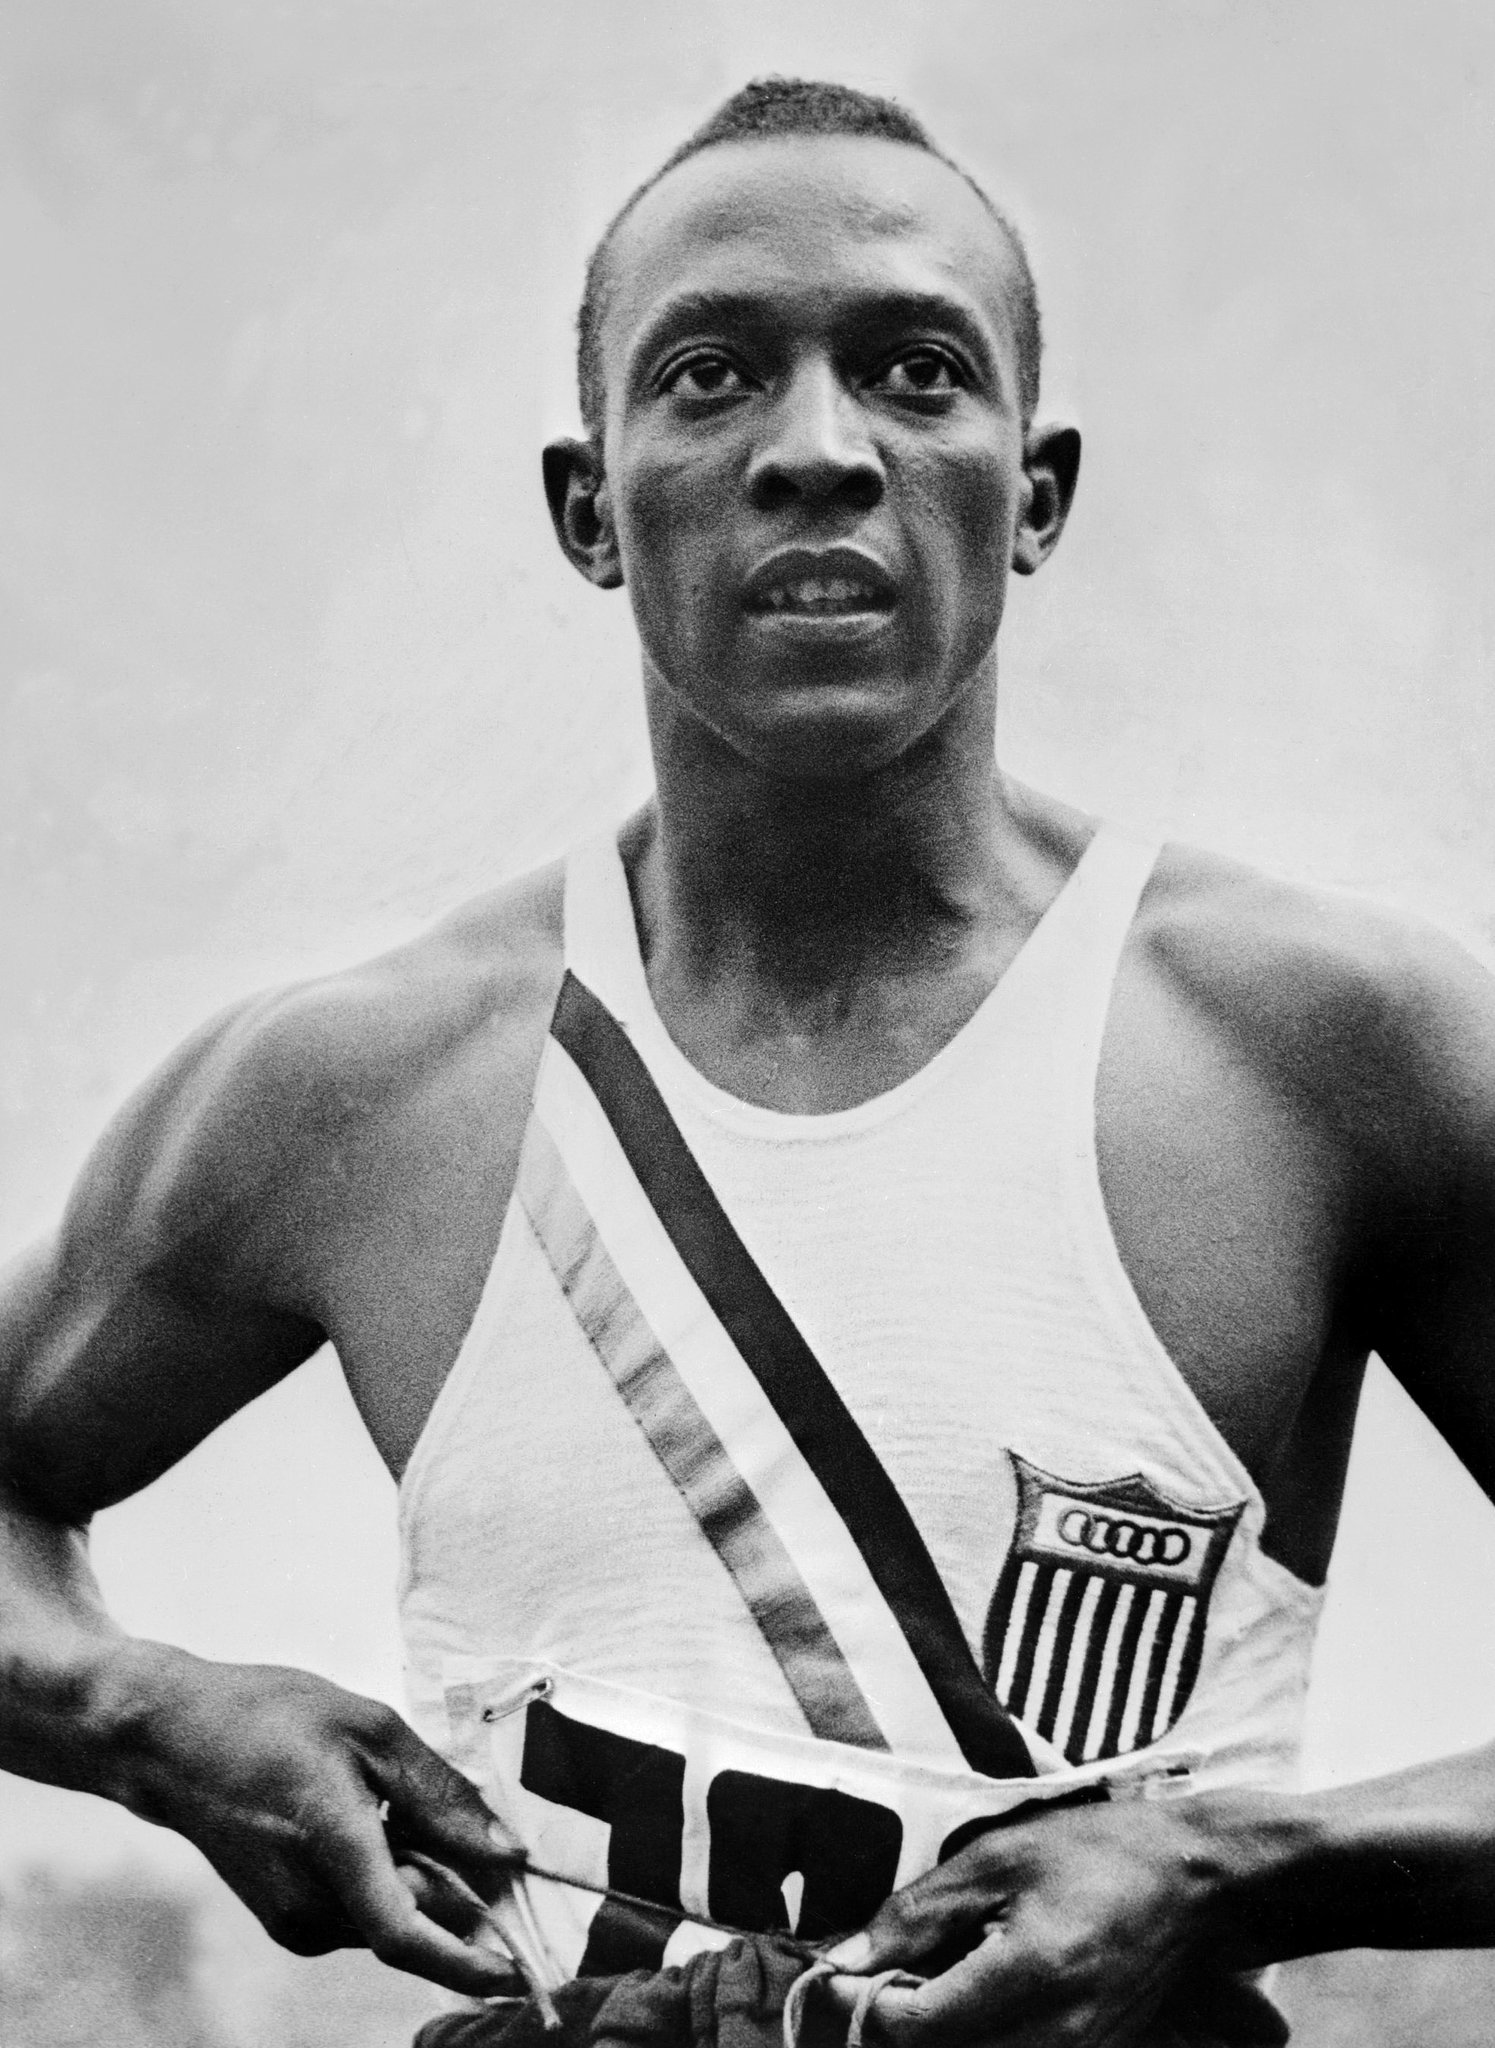 Jesse Owens in the 1936 Olympics.